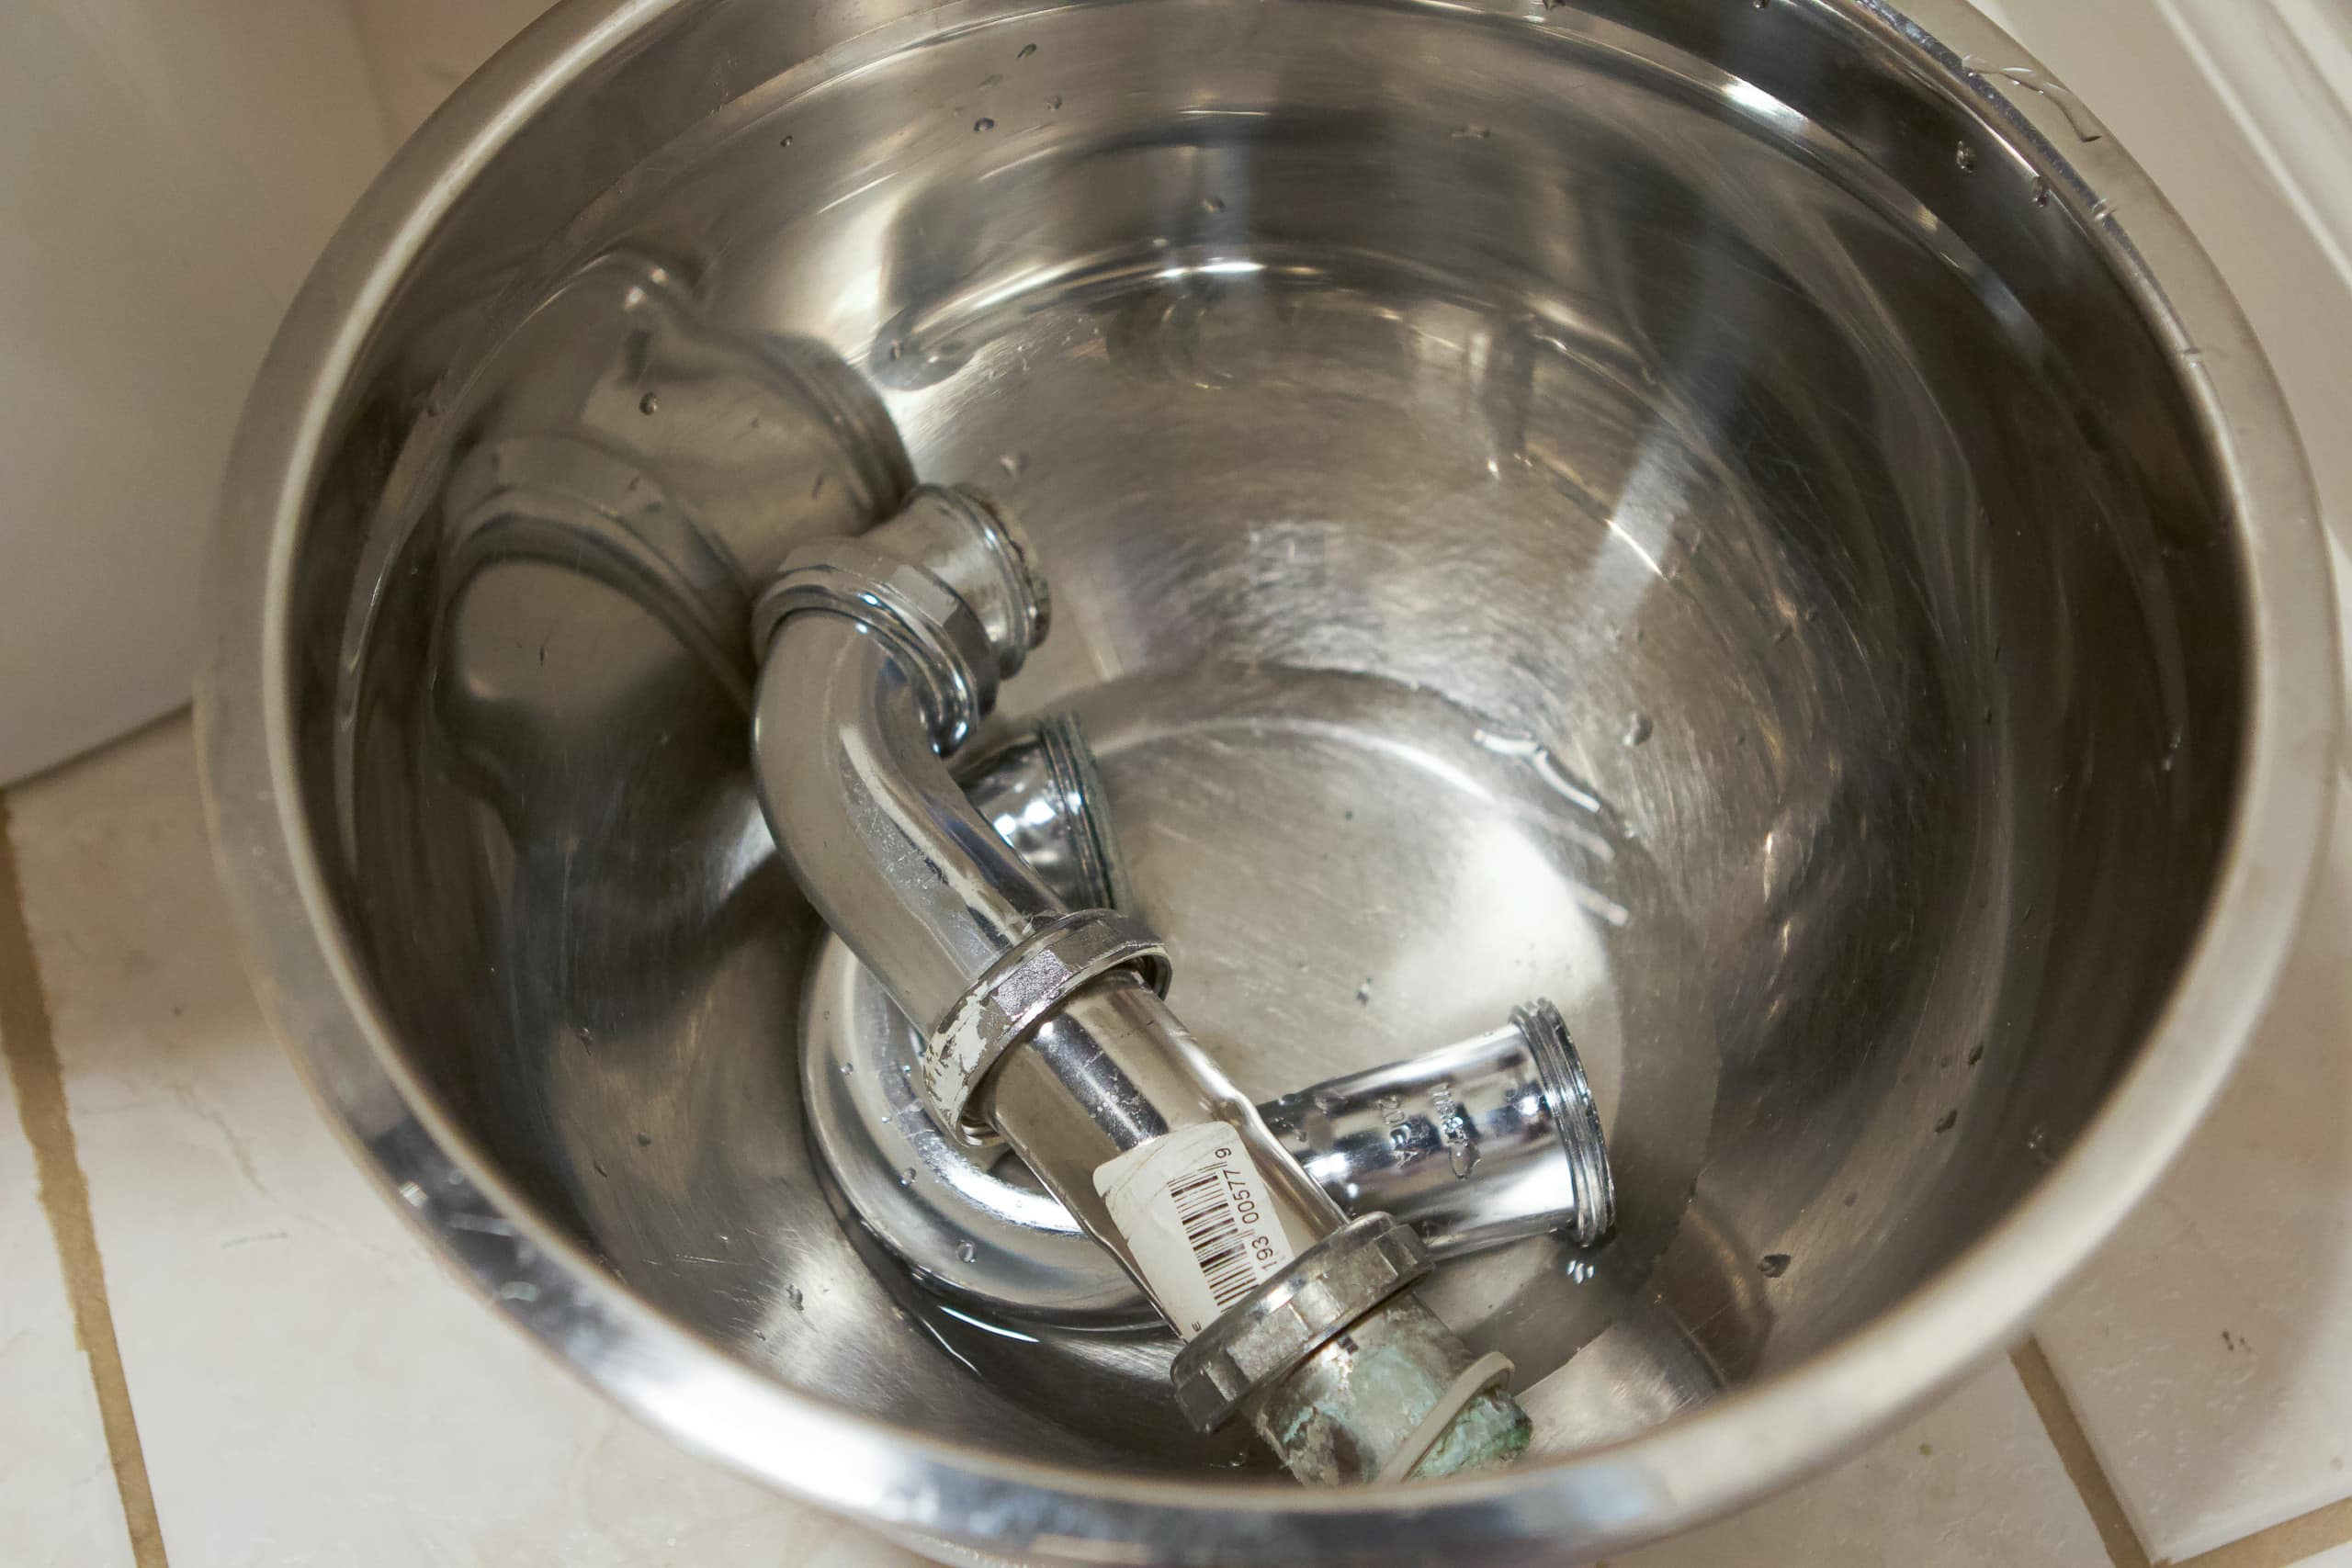 when you install a bathroom faucet, take out the p-trap first